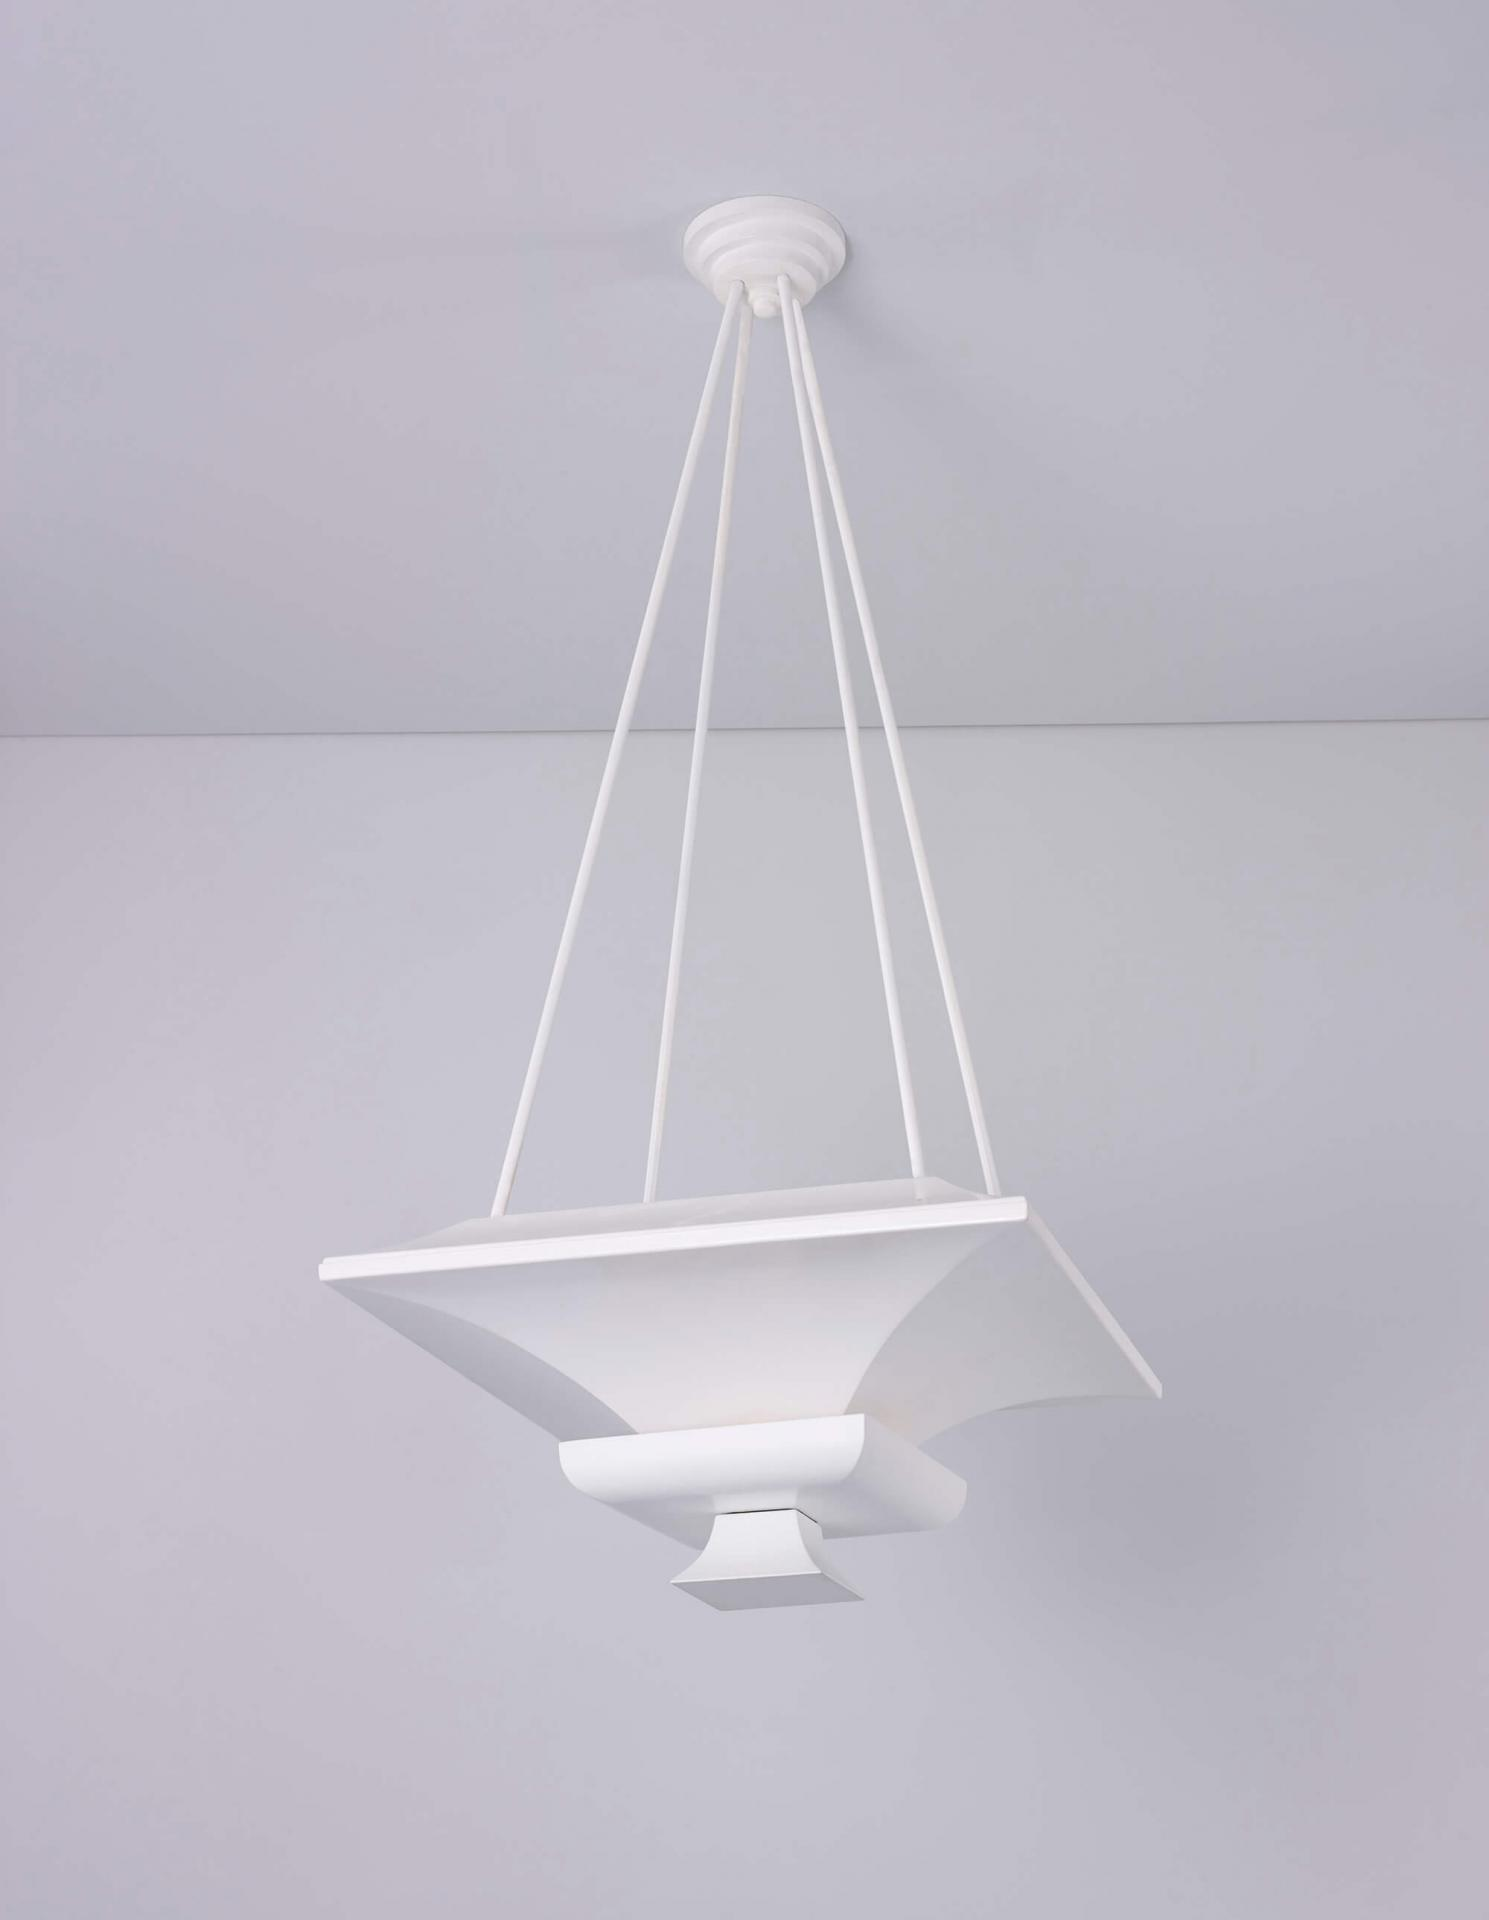 The Allom Ceiling Light by Collier Webb - a mid century inspired ceiling light design